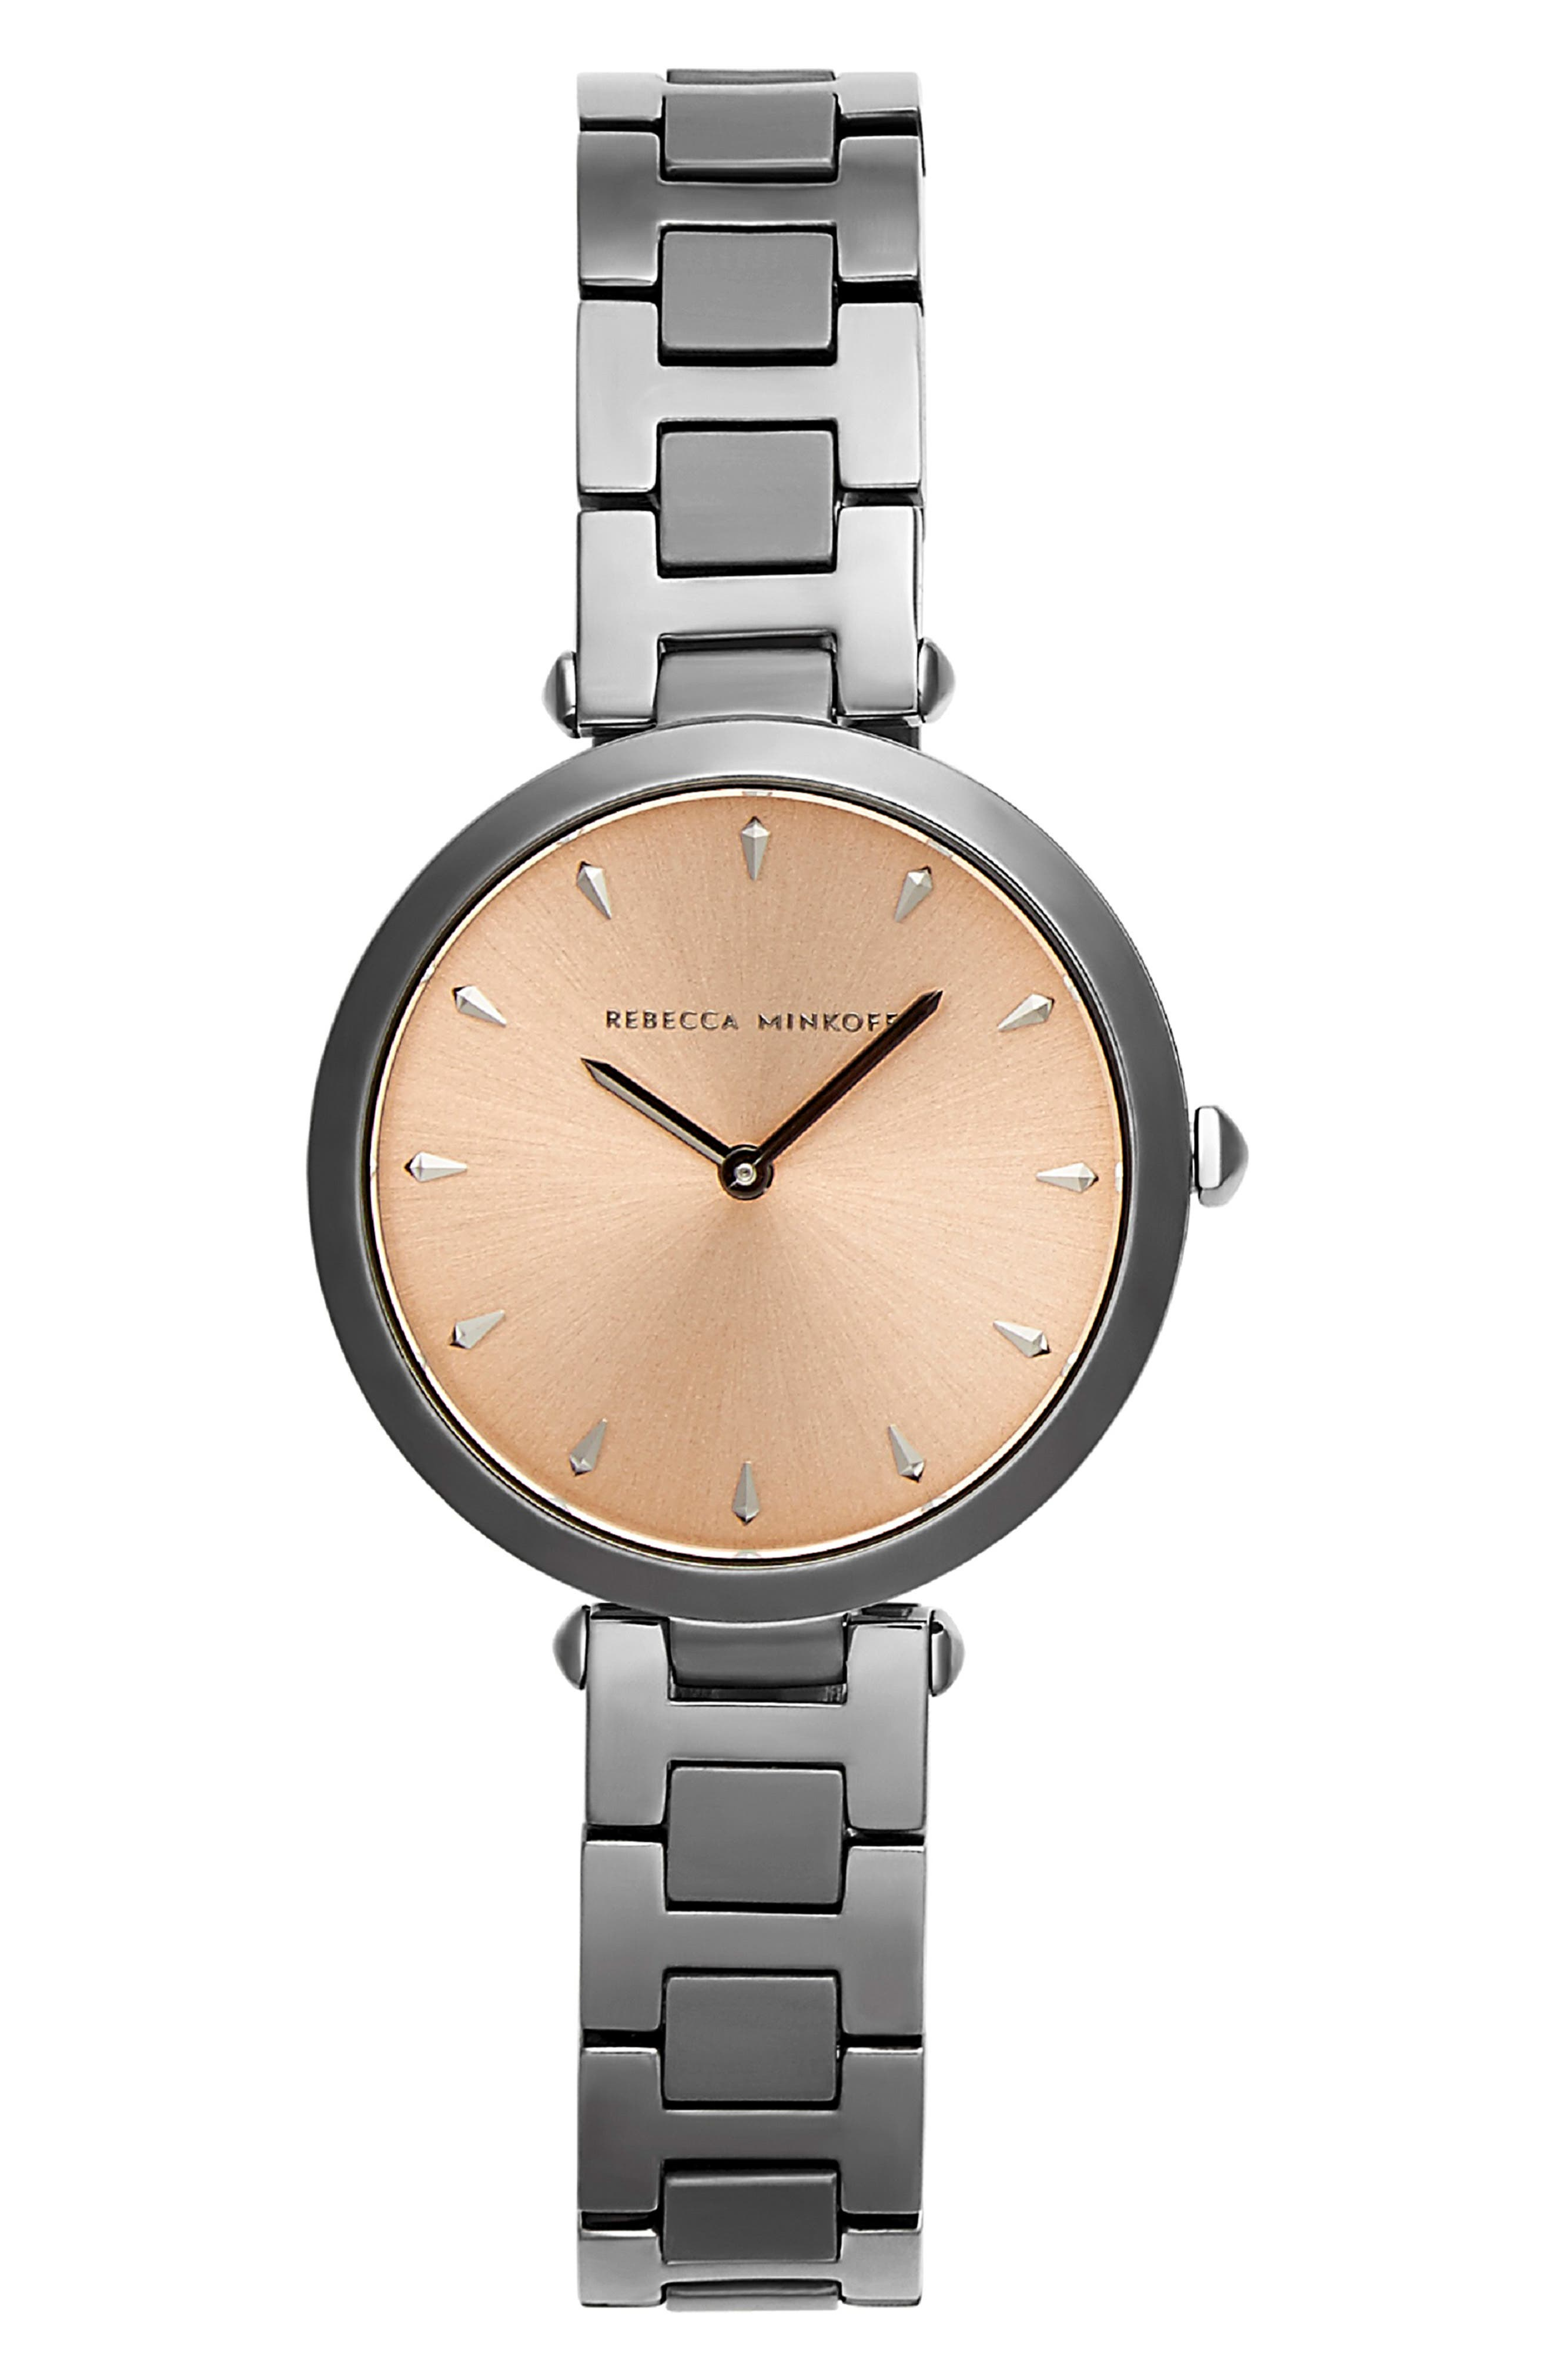 REBECCA MINKOFF, T-Bar Bracelet Strap Watch, 33mm, Main thumbnail 1, color, GREY/ ROSE GOLD/ GREY